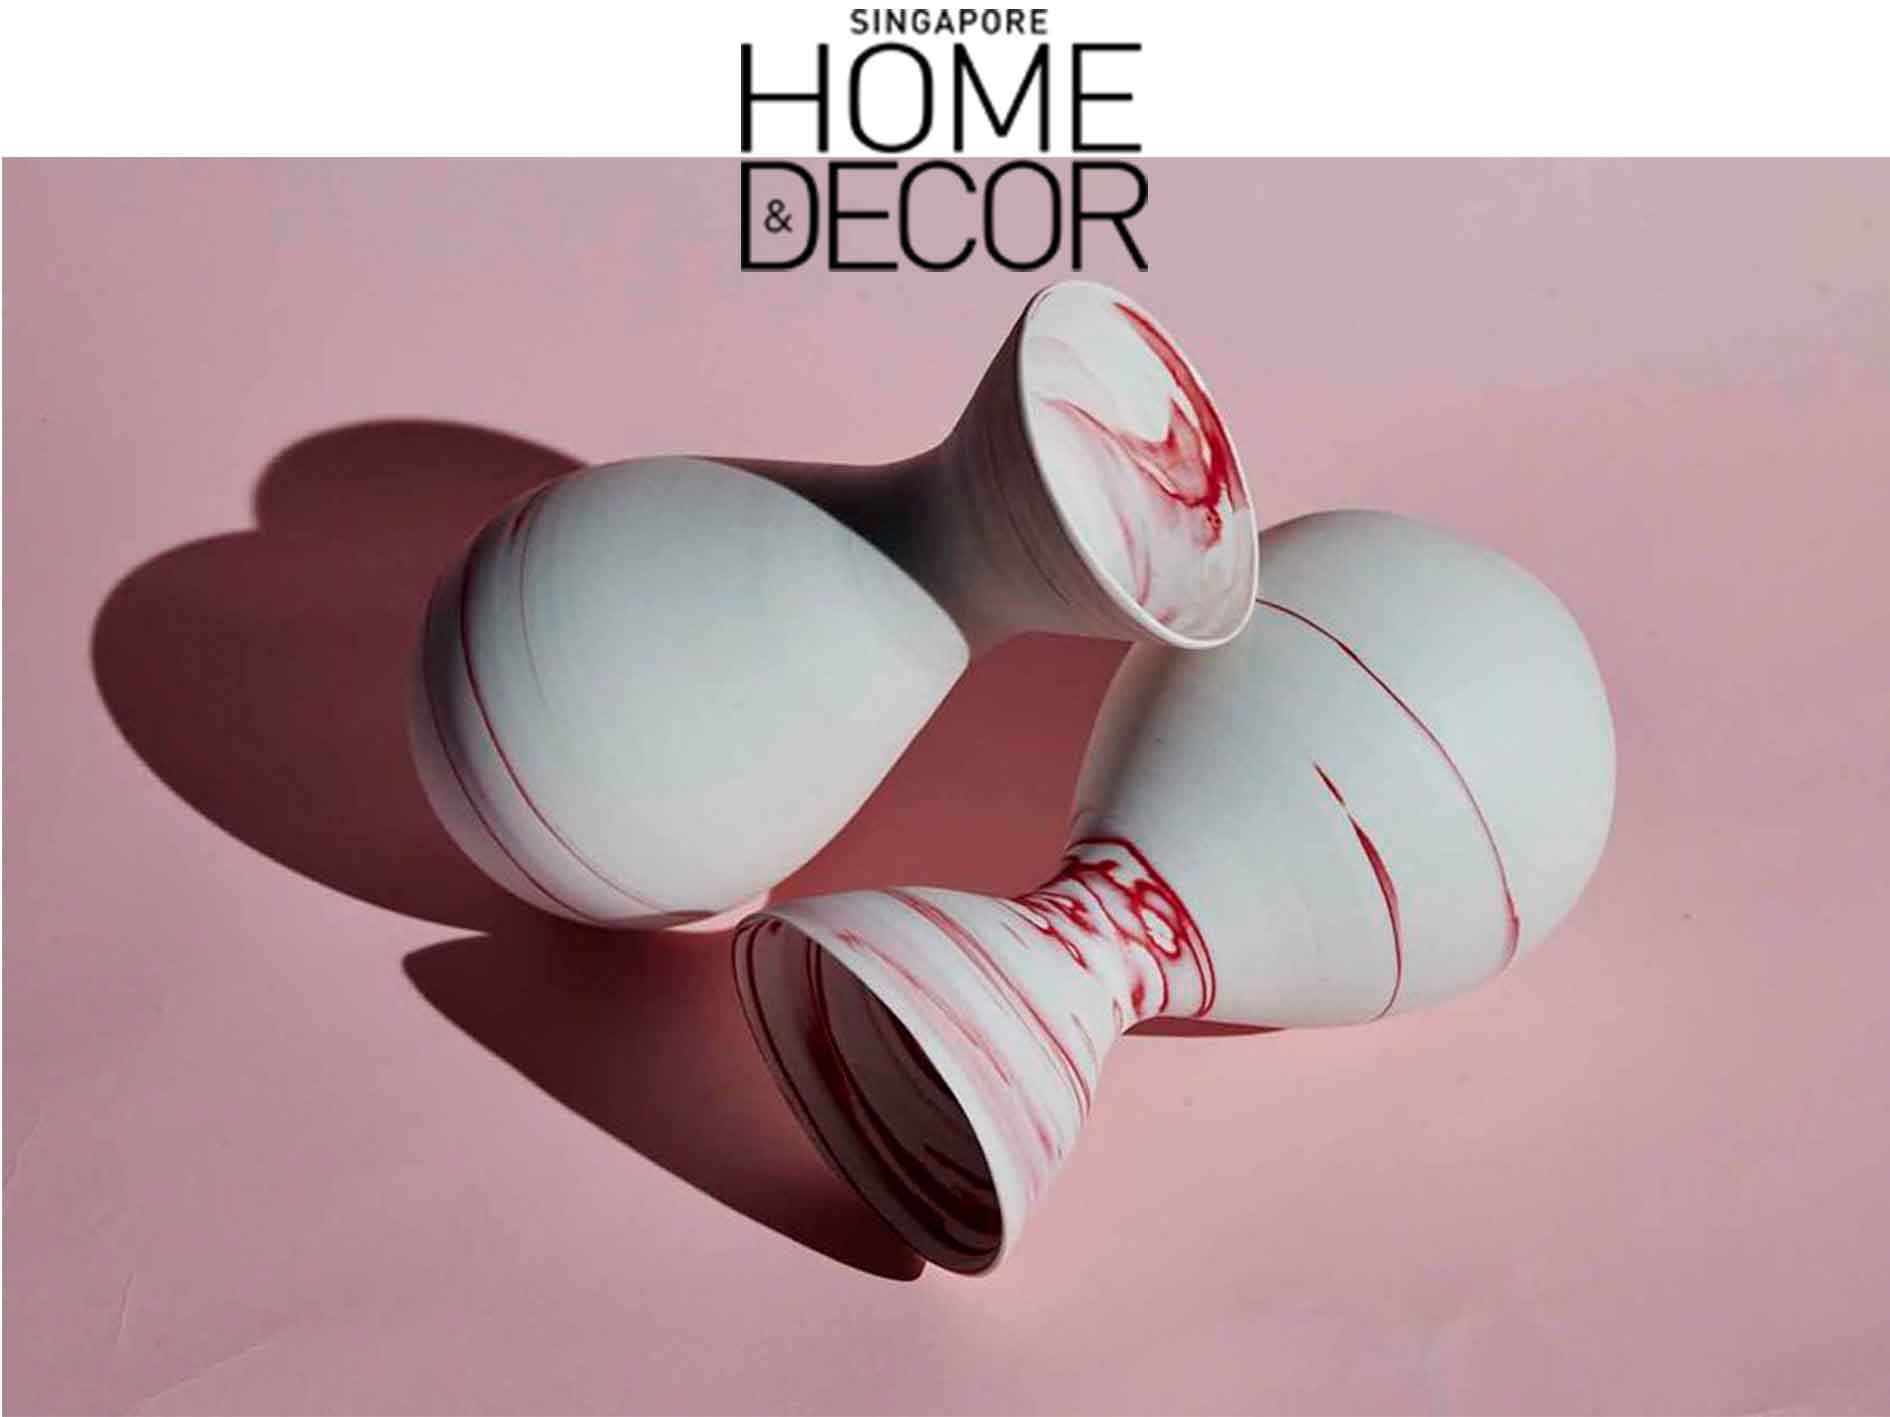 Home and Decor Aug 2017